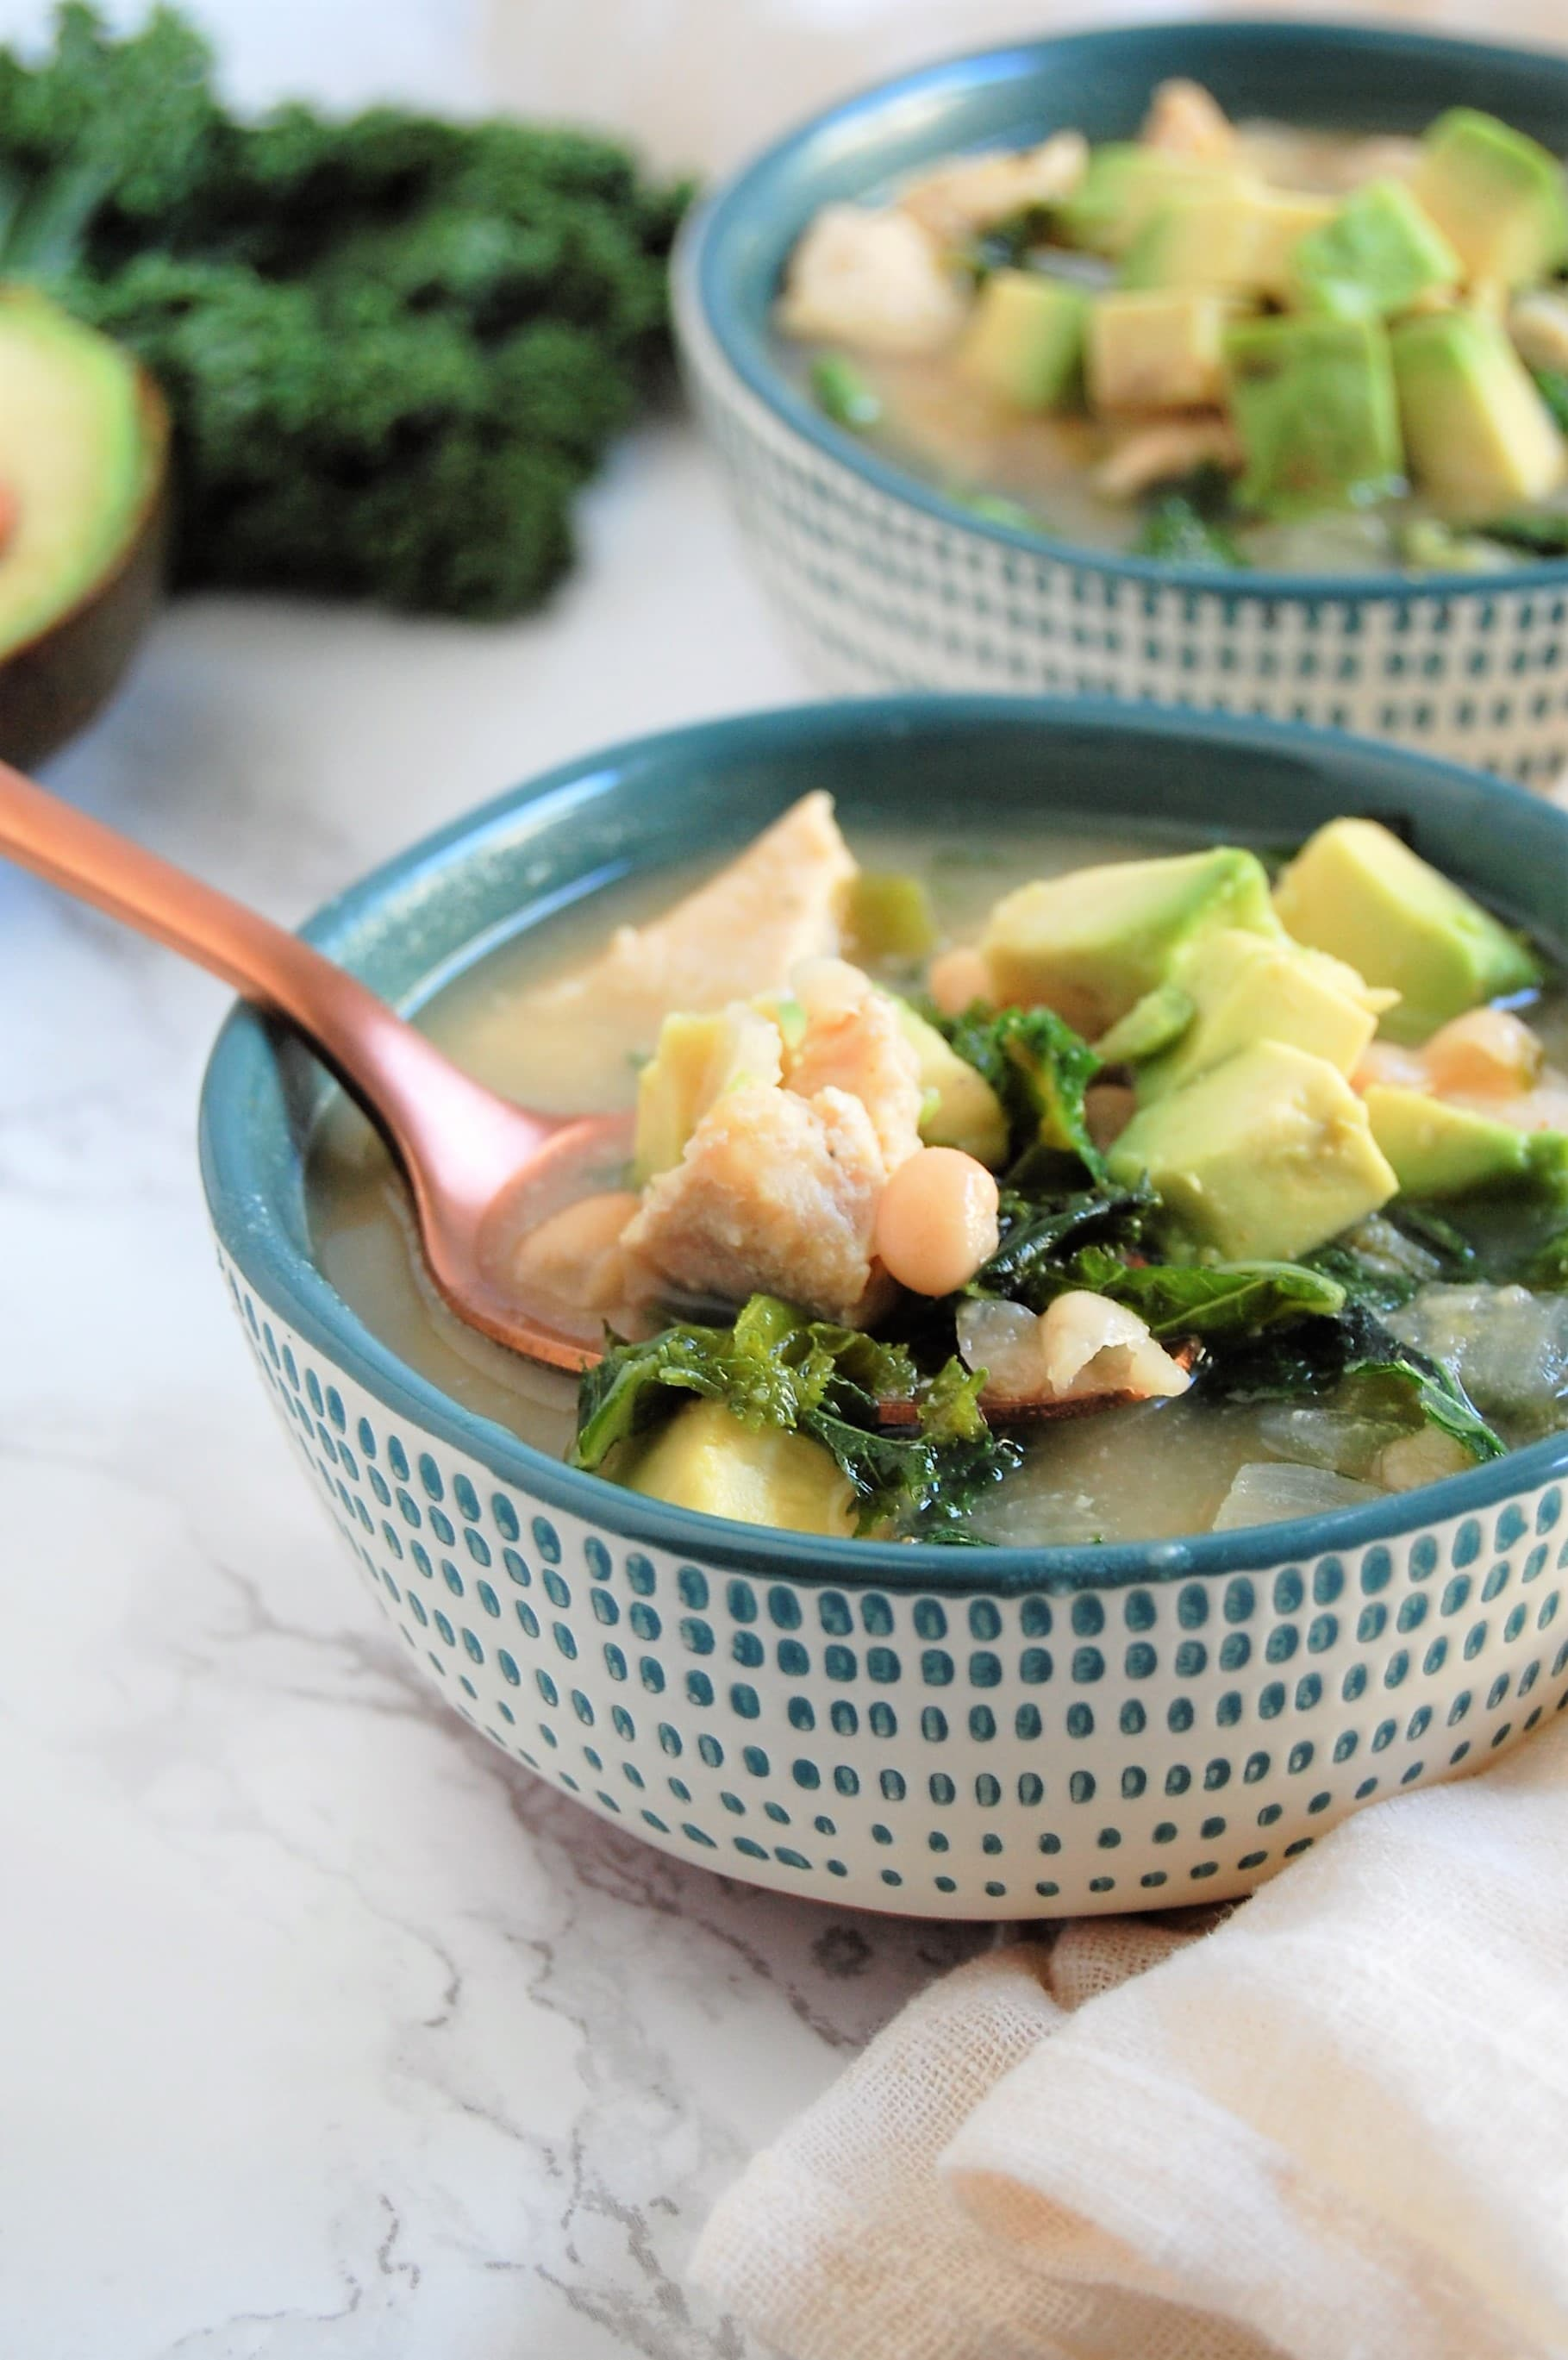 This Chicken & Kale White Bean Chili is packed with delicious flavor, family-friendly, and naturally gluten- and dairy-free.